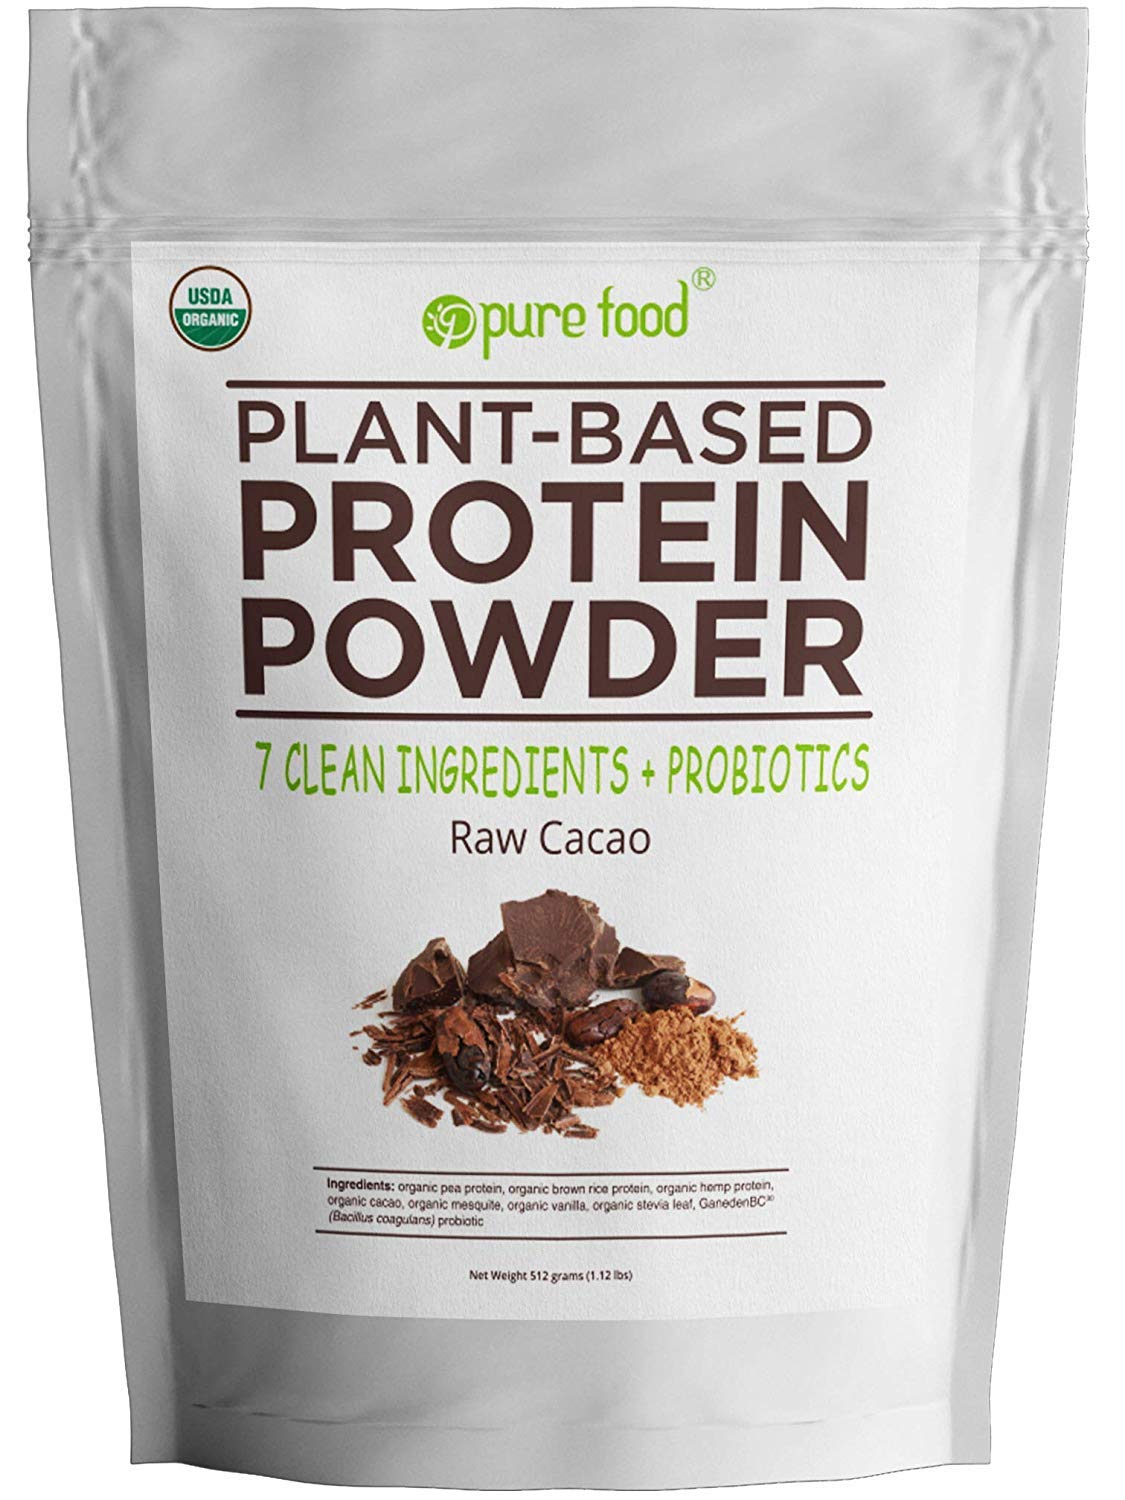 Pure Food: Plant Based Protein Powder with Probiotics   Organic, Clean, All Natural, Vegan, Vegetarian, Whole Superfood Nutritional Supplement With No Additives   Raw Cacao (Chocolate), 512 Gram Pouch